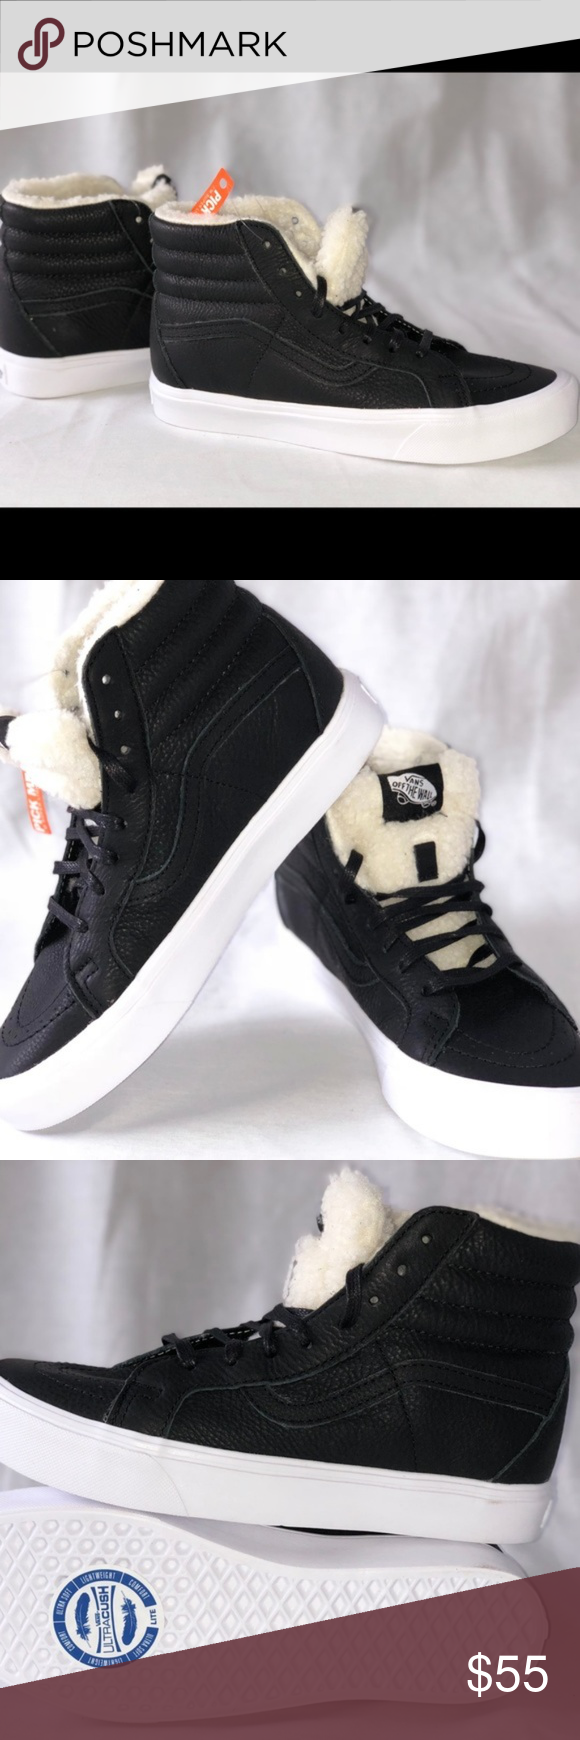 7e455eabef Vans SK8-Hi Reissue Lite (Sherpa) Black True White Vans SK8-Hi Reissue Lite  (Sherpa) Black True White. Condition  New with box. Size  Men s 10.5